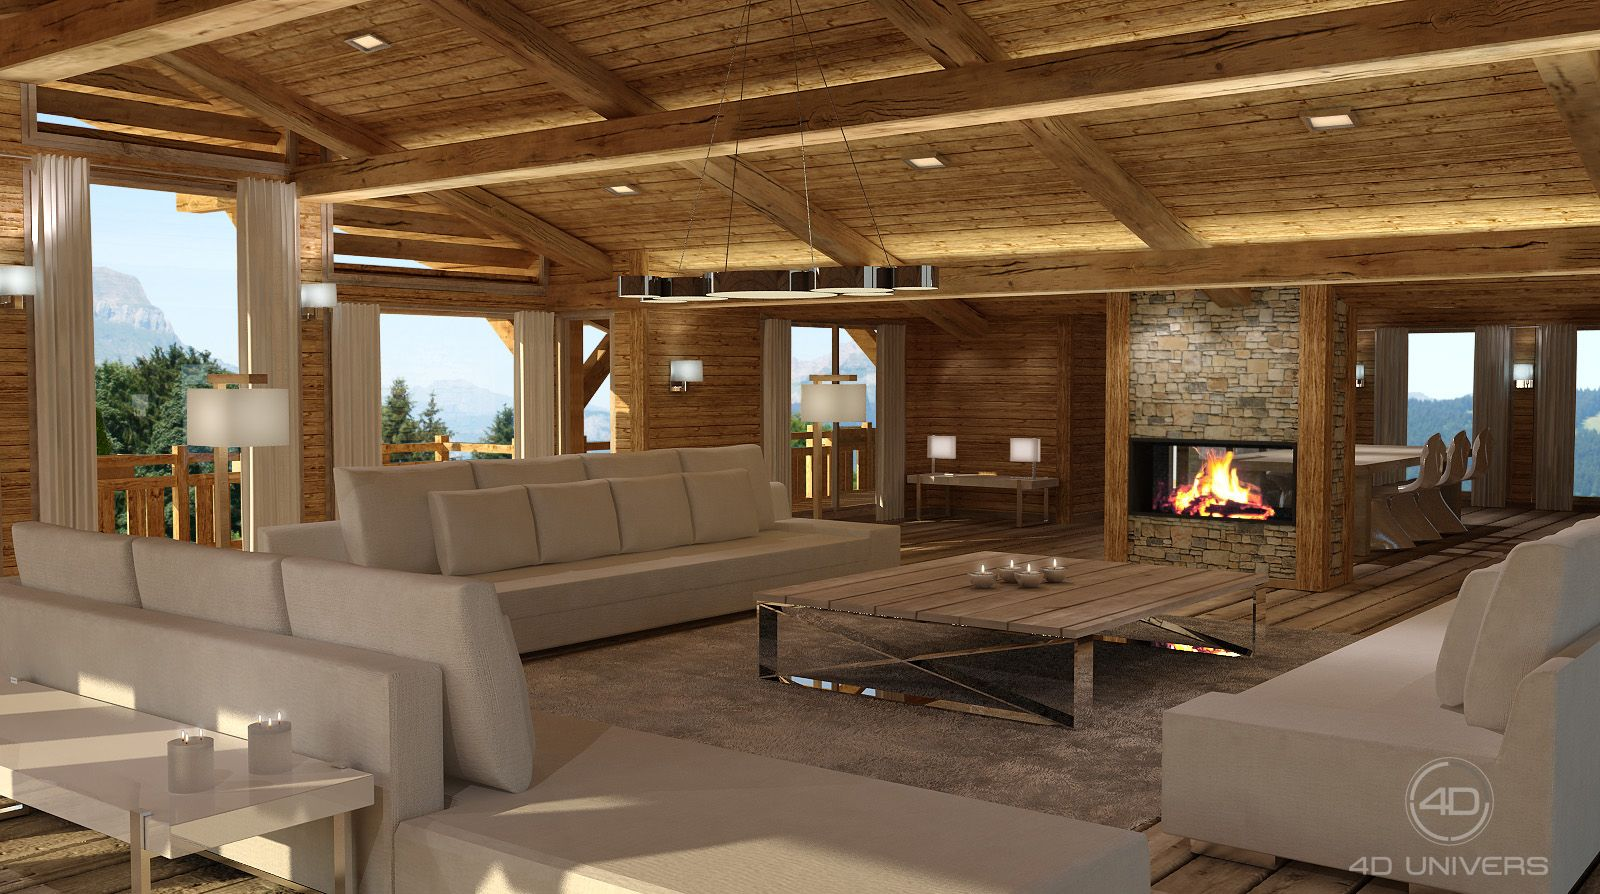 Best Pin By Paolo Castilho On Rustic Elegance Home Interior 400 x 300